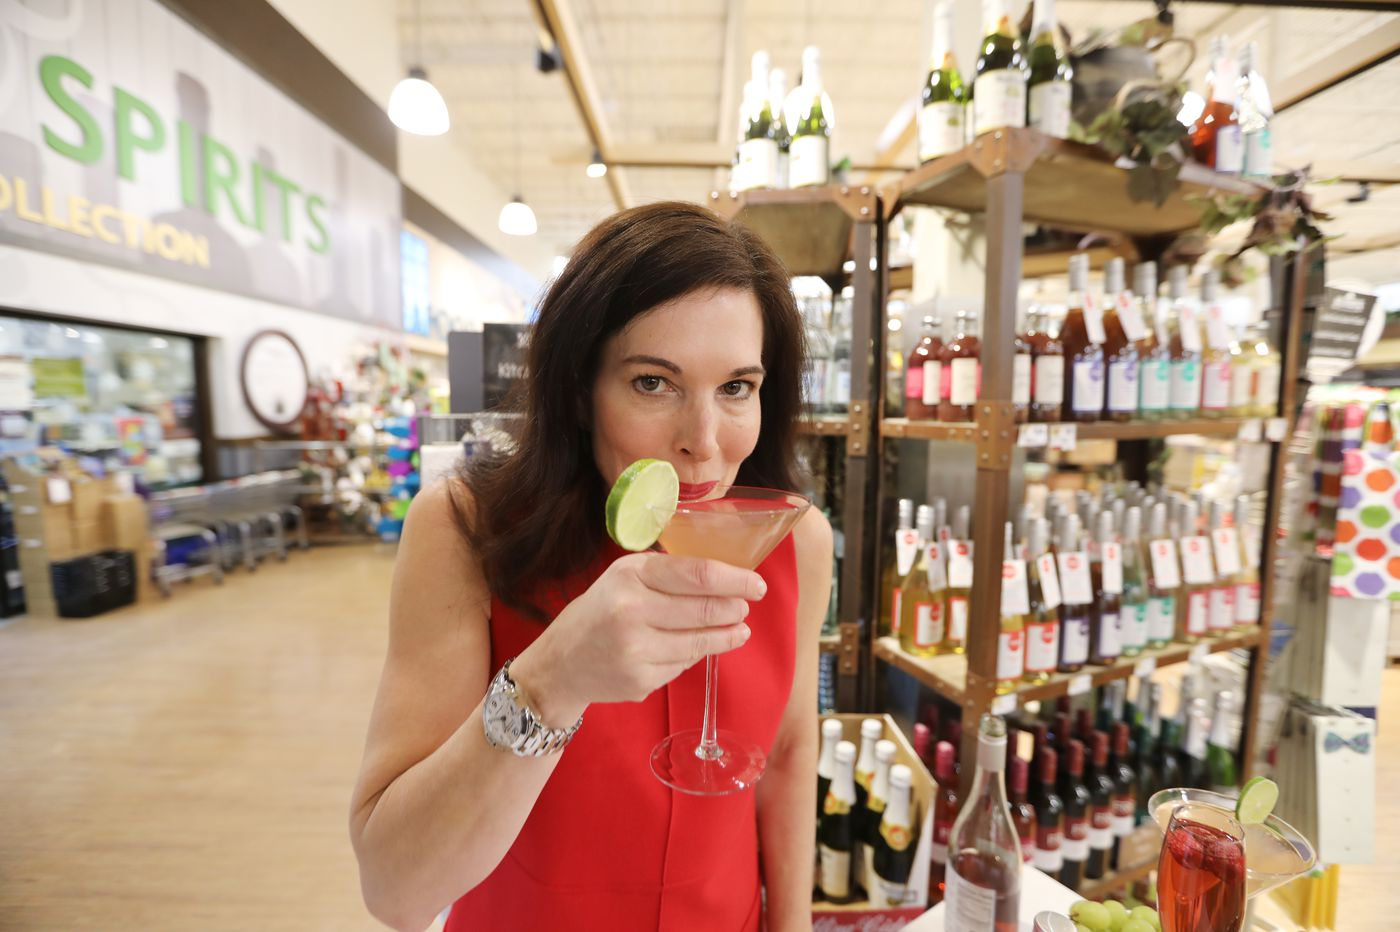 This Main Line engineer quit drinking and her job and wants to build a $10 million mocktail business